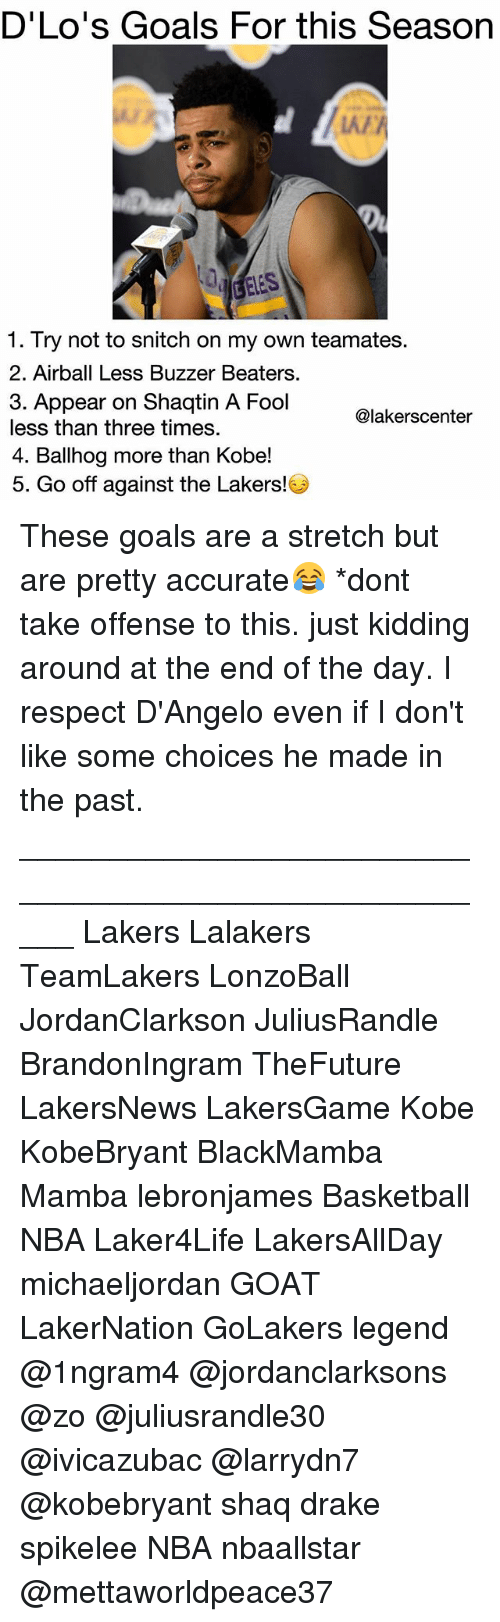 buzzer: D'Lo's Goals For this Season  LAA  1. Try not to snitch on my own teamates  2. Airball Less Buzzer Beaters  3. Appear on Shaqtin A Fool  less than three times.  4. Ballhog more than Kobe!  5. Go off against the Lakers!  @lakerscenter These goals are a stretch but are pretty accurate😂 *dont take offense to this. just kidding around at the end of the day. I respect D'Angelo even if I don't like some choices he made in the past. _____________________________________________________ Lakers Lalakers TeamLakers LonzoBall JordanClarkson JuliusRandle BrandonIngram TheFuture LakersNews LakersGame Kobe KobeBryant BlackMamba Mamba lebronjames Basketball NBA Laker4Life LakersAllDay michaeljordan GOAT LakerNation GoLakers legend @1ngram4 @jordanclarksons @zo @juliusrandle30 @ivicazubac @larrydn7 @kobebryant shaq drake spikelee NBA nbaallstar @mettaworldpeace37